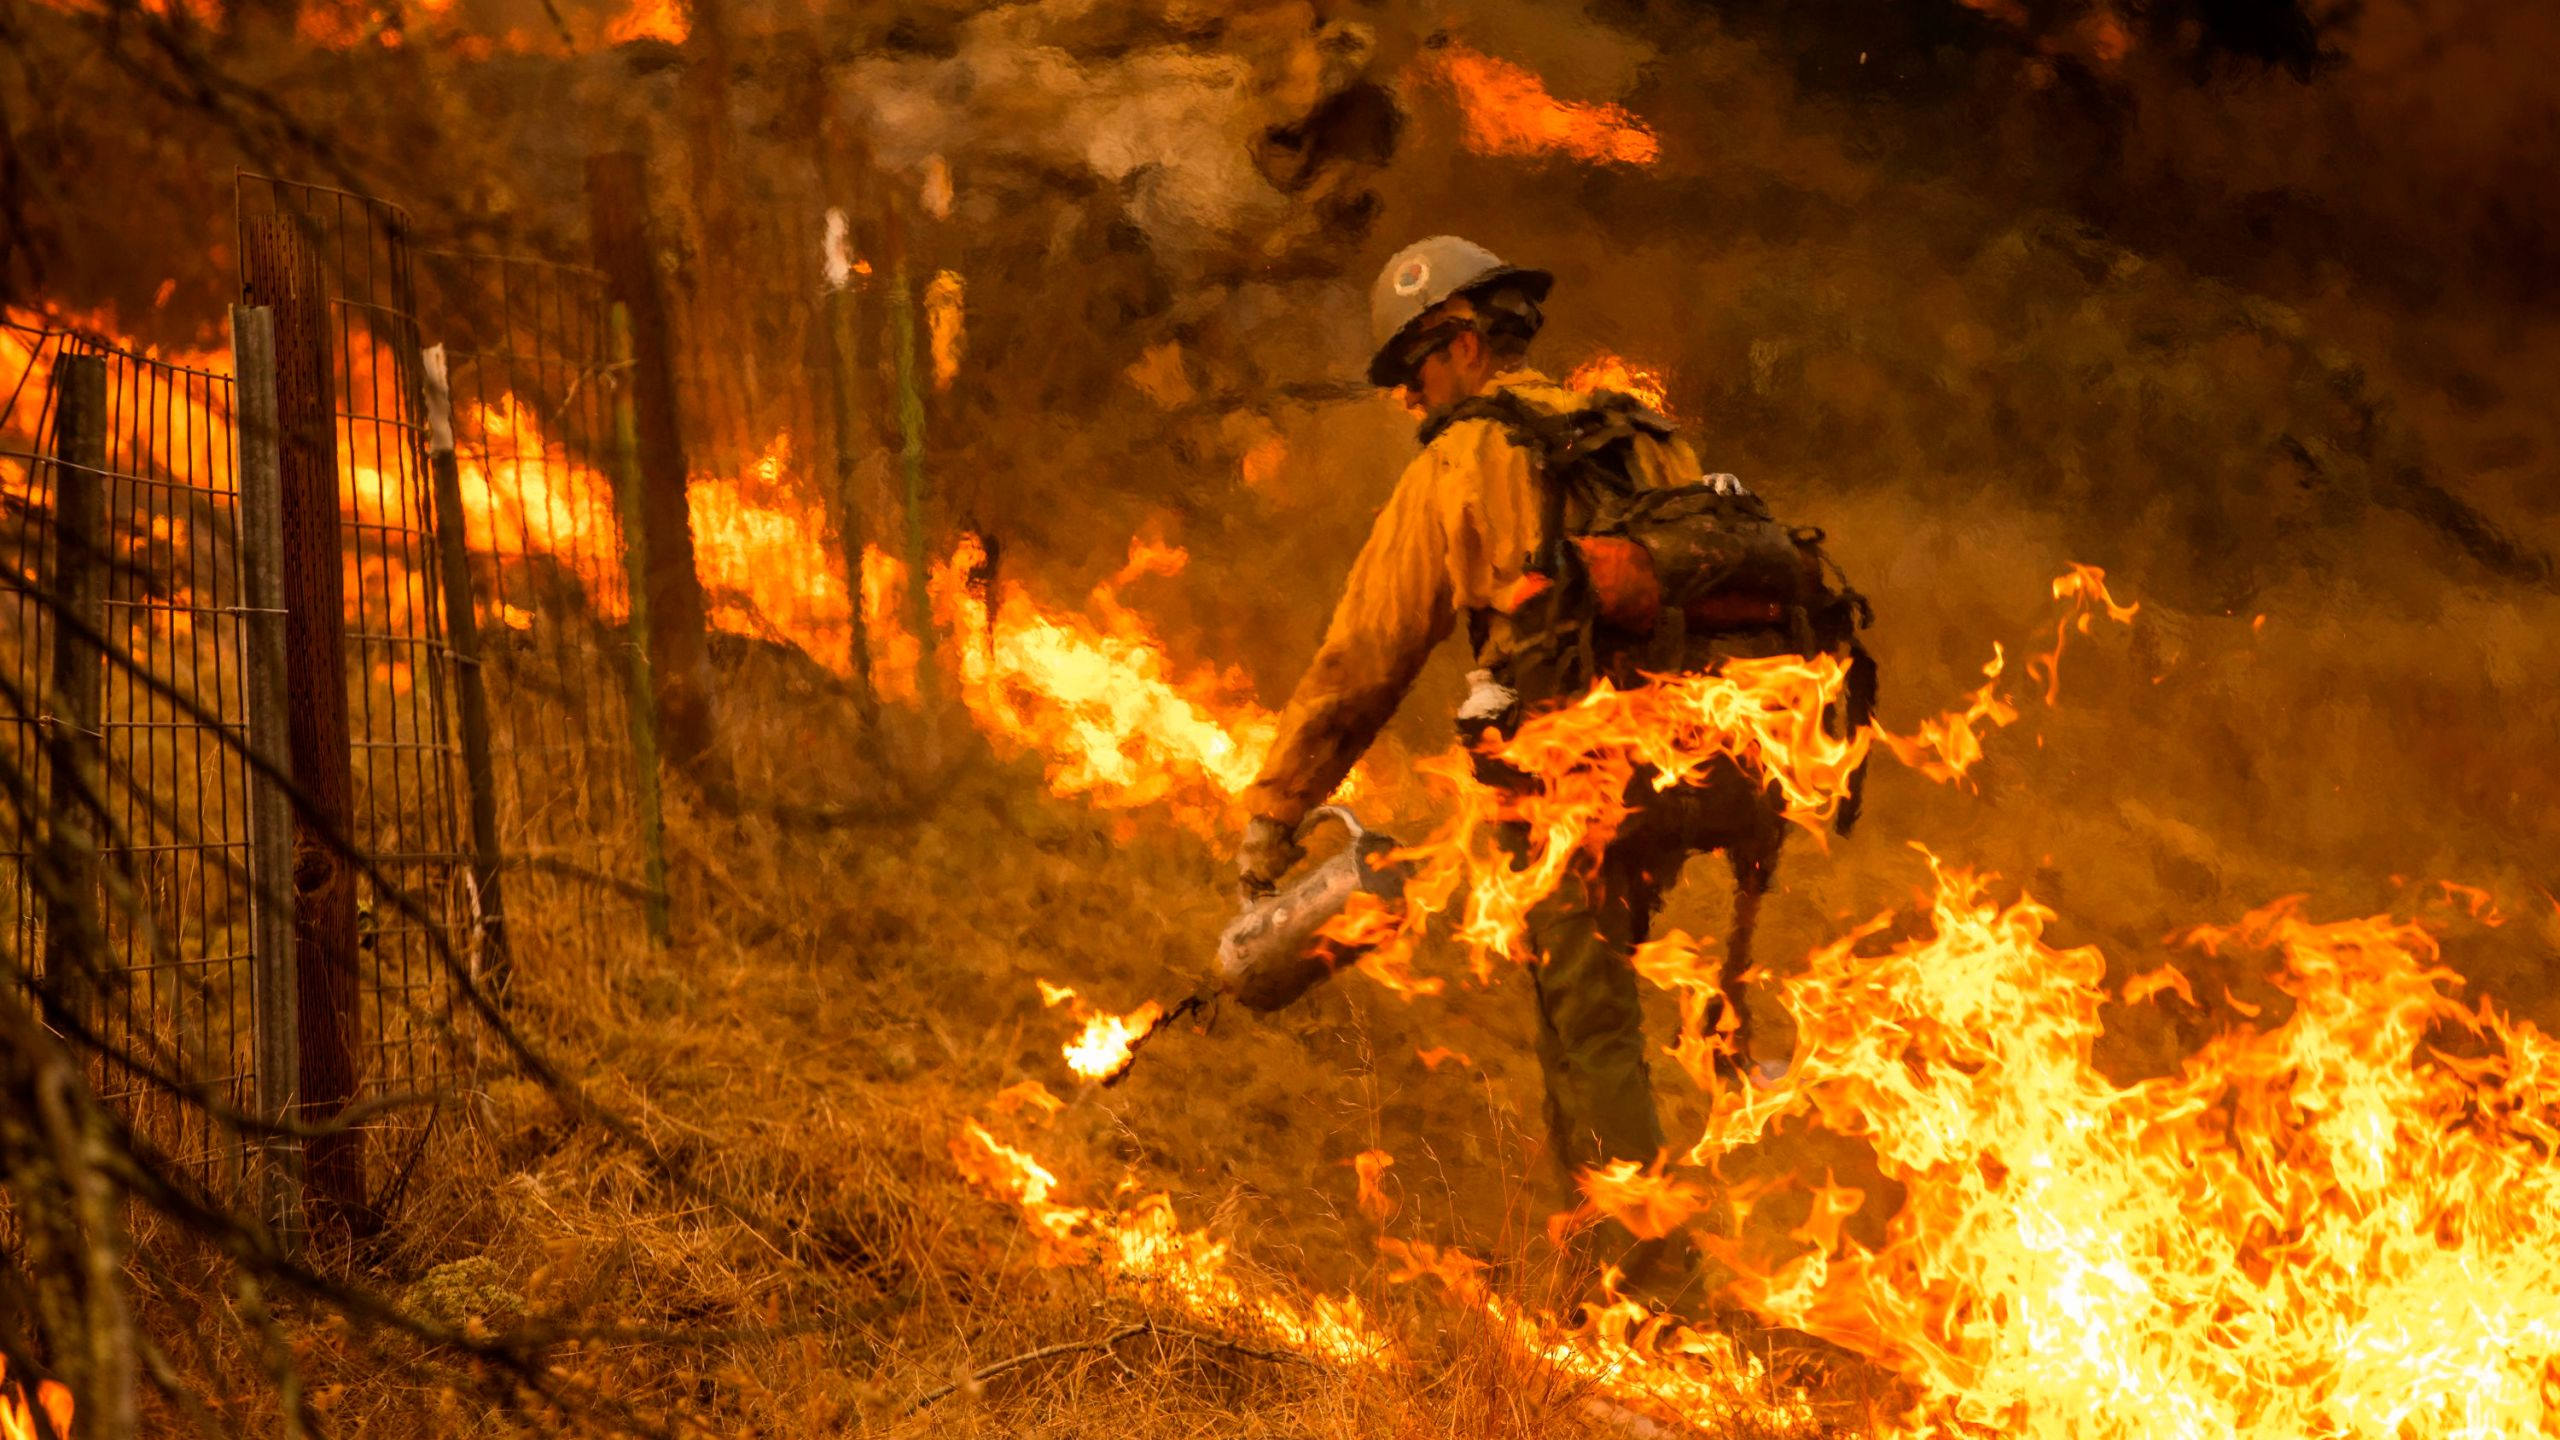 A firefighter sets a back fire along a hillside during firefighting operations to battle the Kincade Fire in Healdsburg, Calif. on Oct. 26, 2019. (Credit: PHILIP PACHECO/AFP via Getty Images)